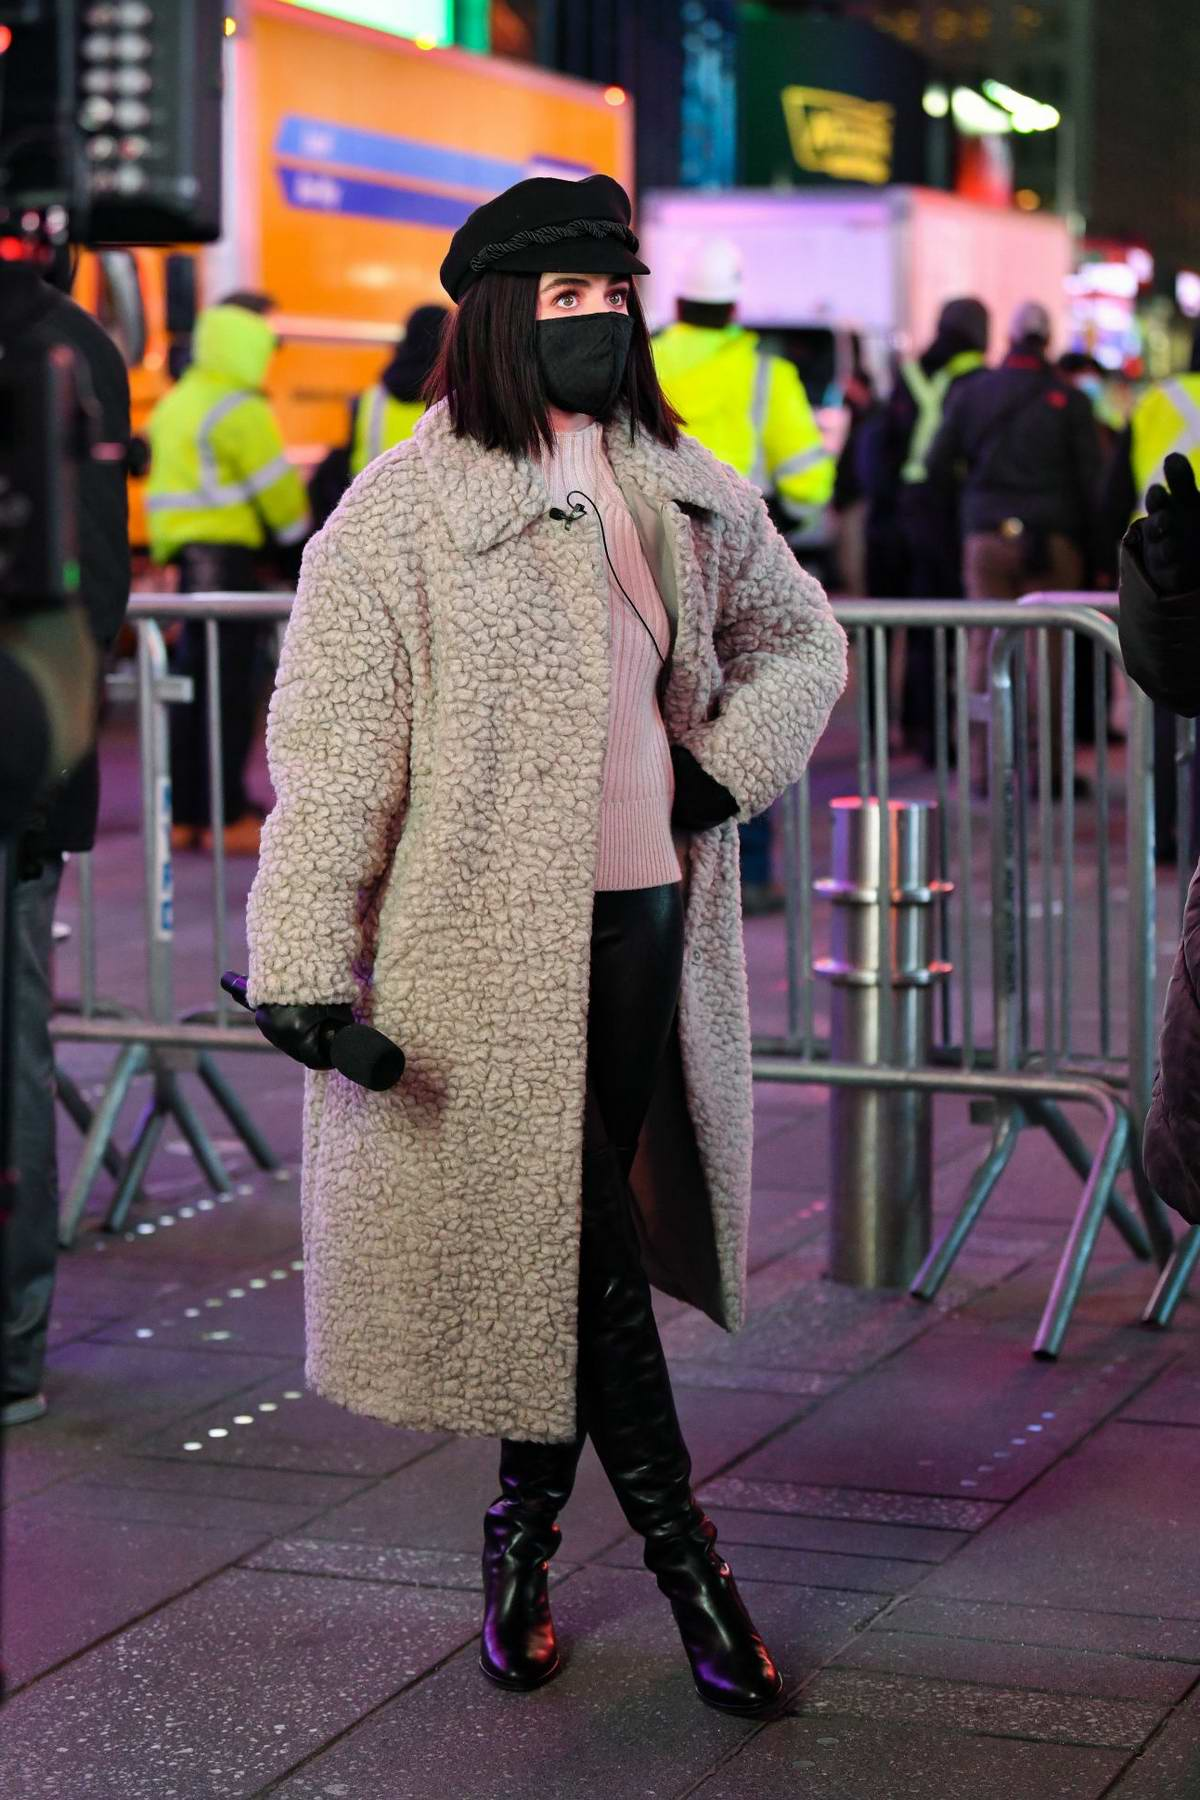 Lucy Hale seen at the 'Dick Clark's New Year's Rockin' Eve' 2021 at Times Square in New York City